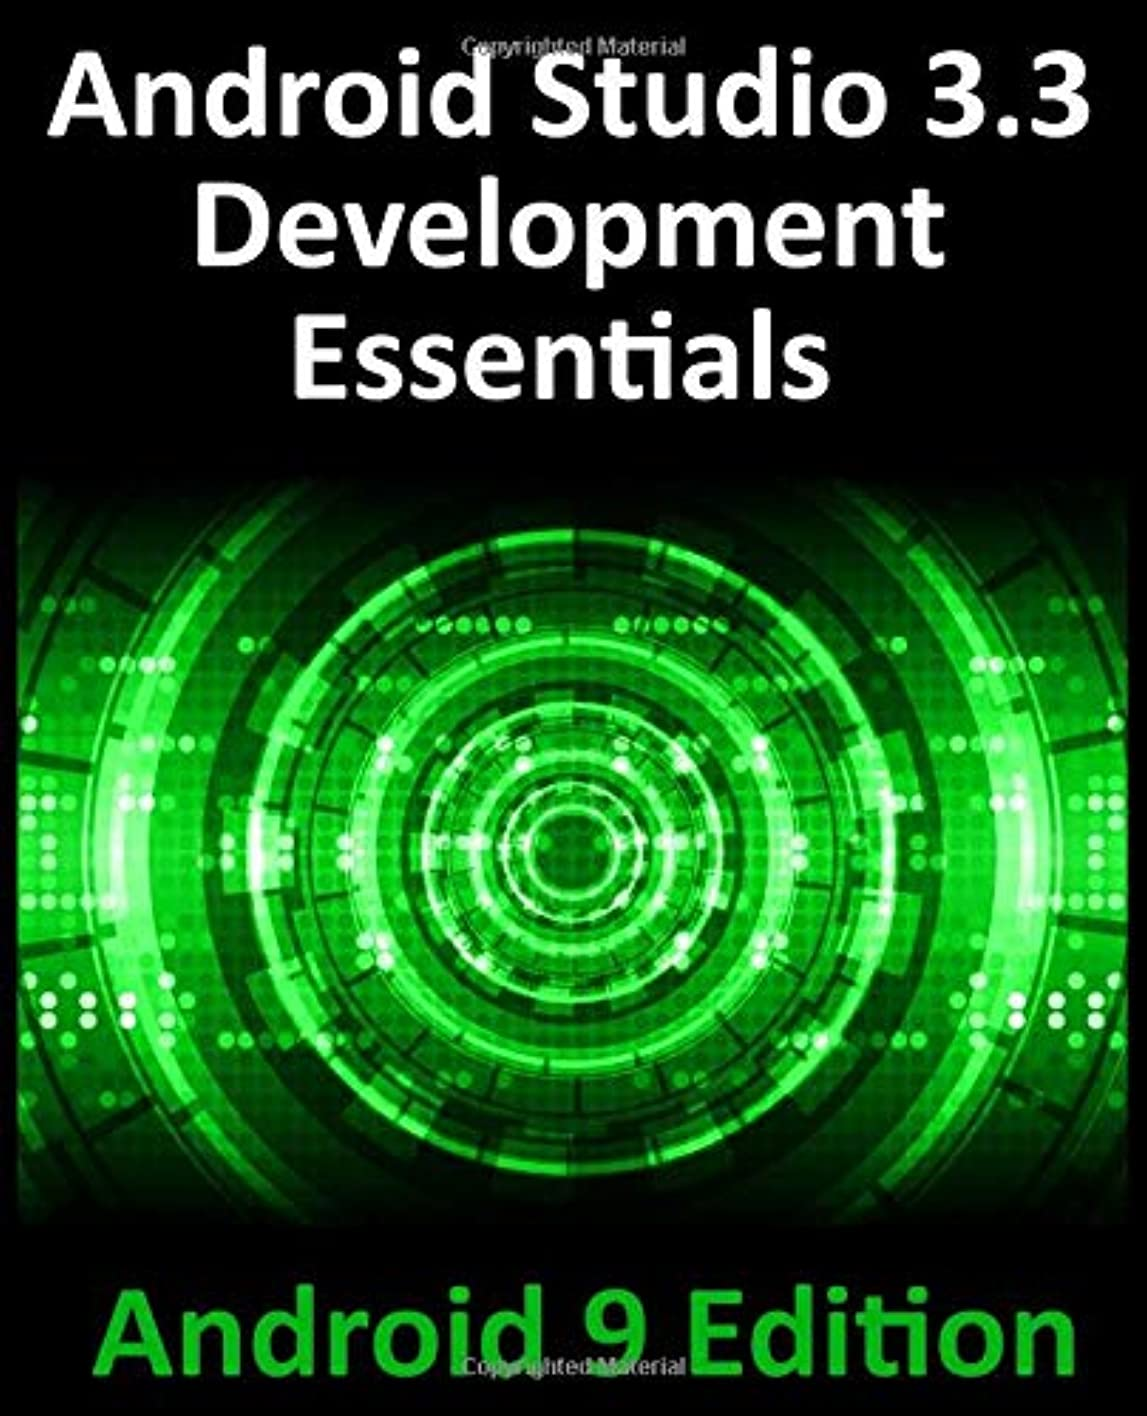 宴会歩行者振動させるAndroid Studio 3.3 Development Essentials - Android 9 Edition: Developing Android 9 Apps Using Android Studio 3.3, Java and Android Jetpack